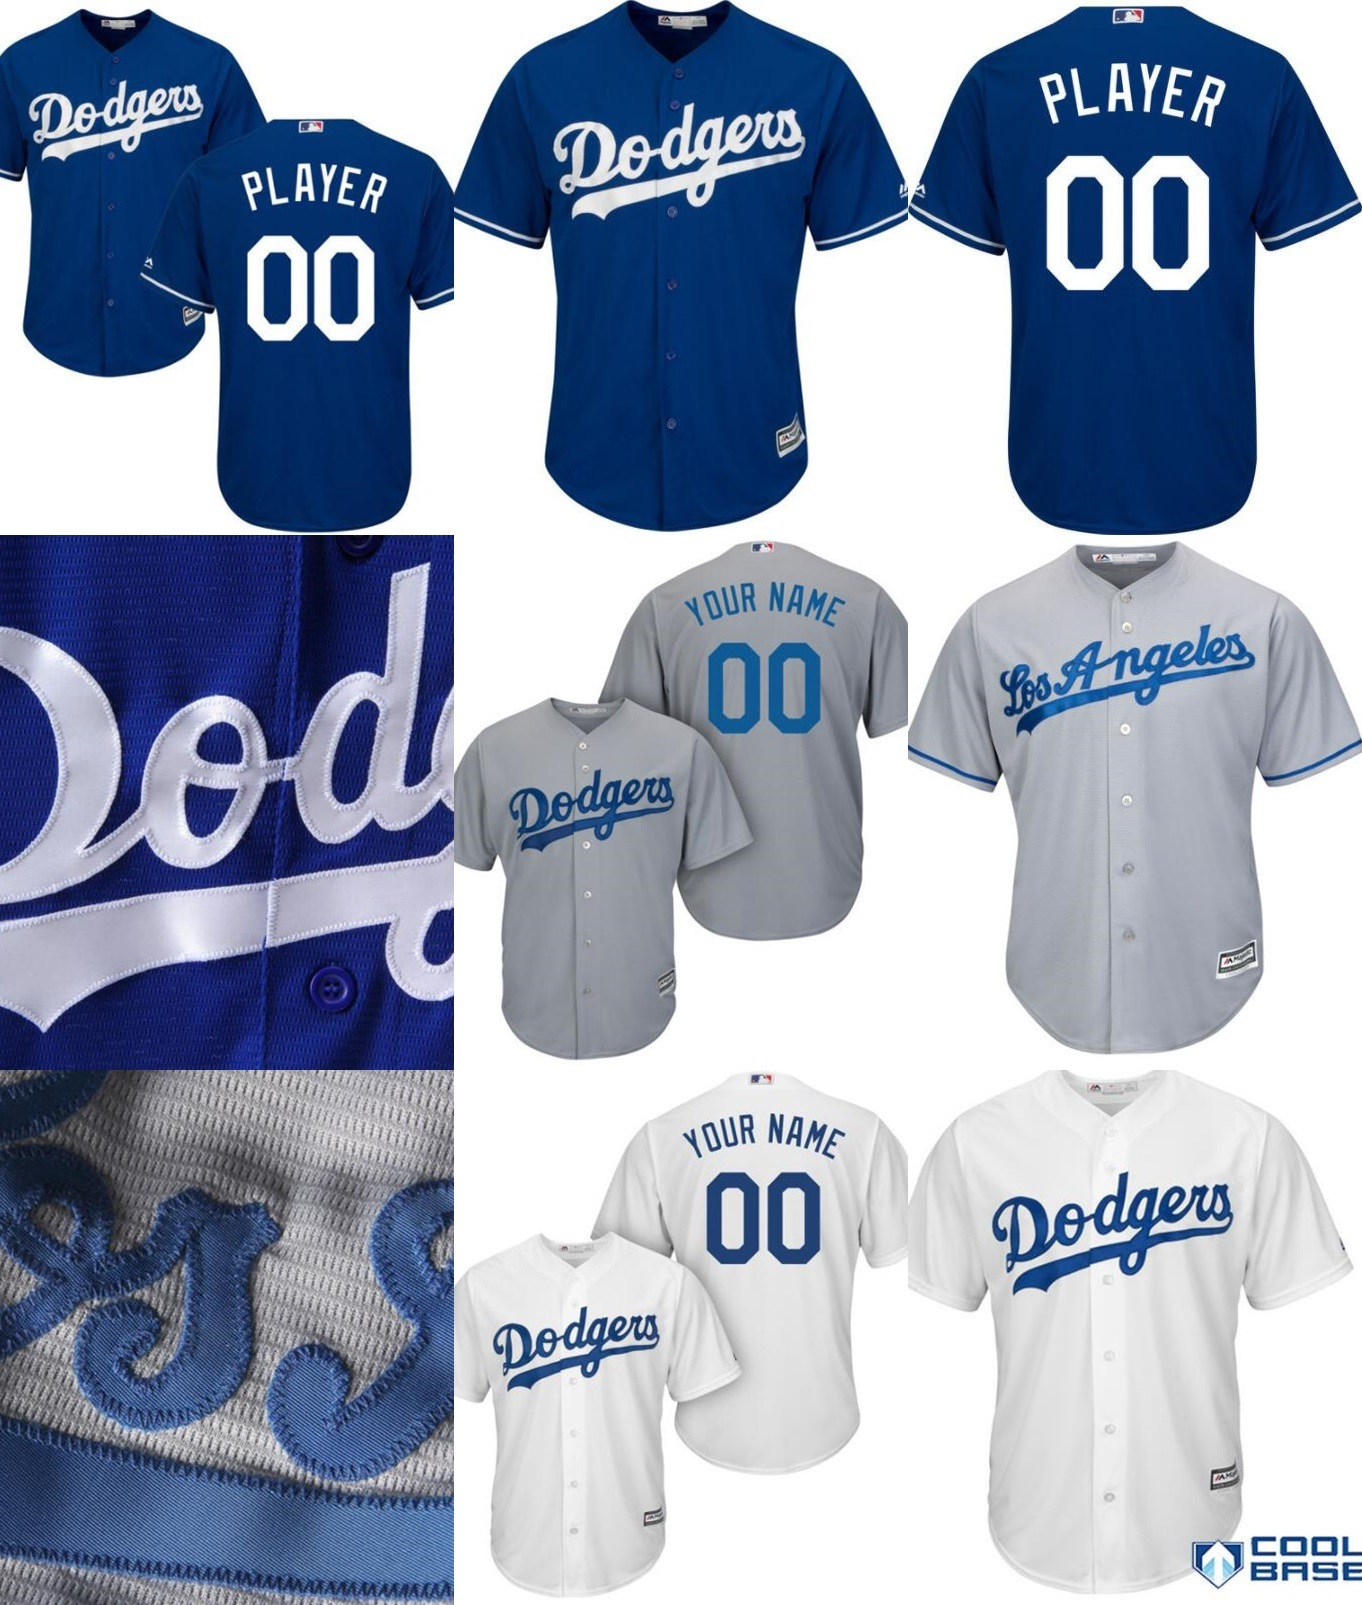 8f8a20663c5b5 Customizable Dodgers T Shirts – EDGE Engineering and Consulting Limited